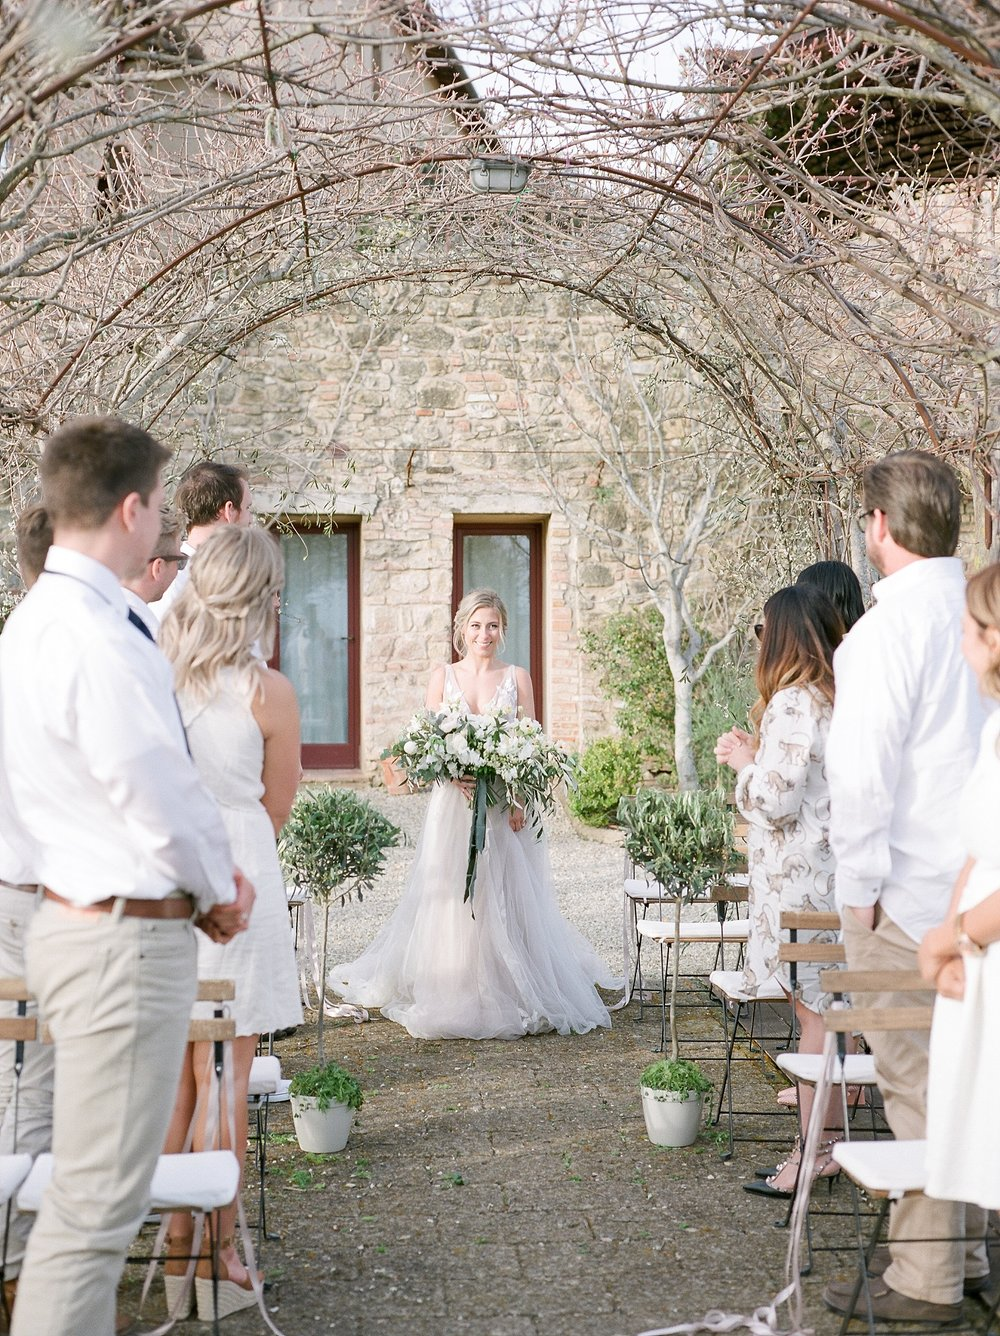 All White Destination Wedding in the Hills of Tuscany Italy at Estate Borgo Petrognano by Kelsi Kliethermes Photography_0047.jpg